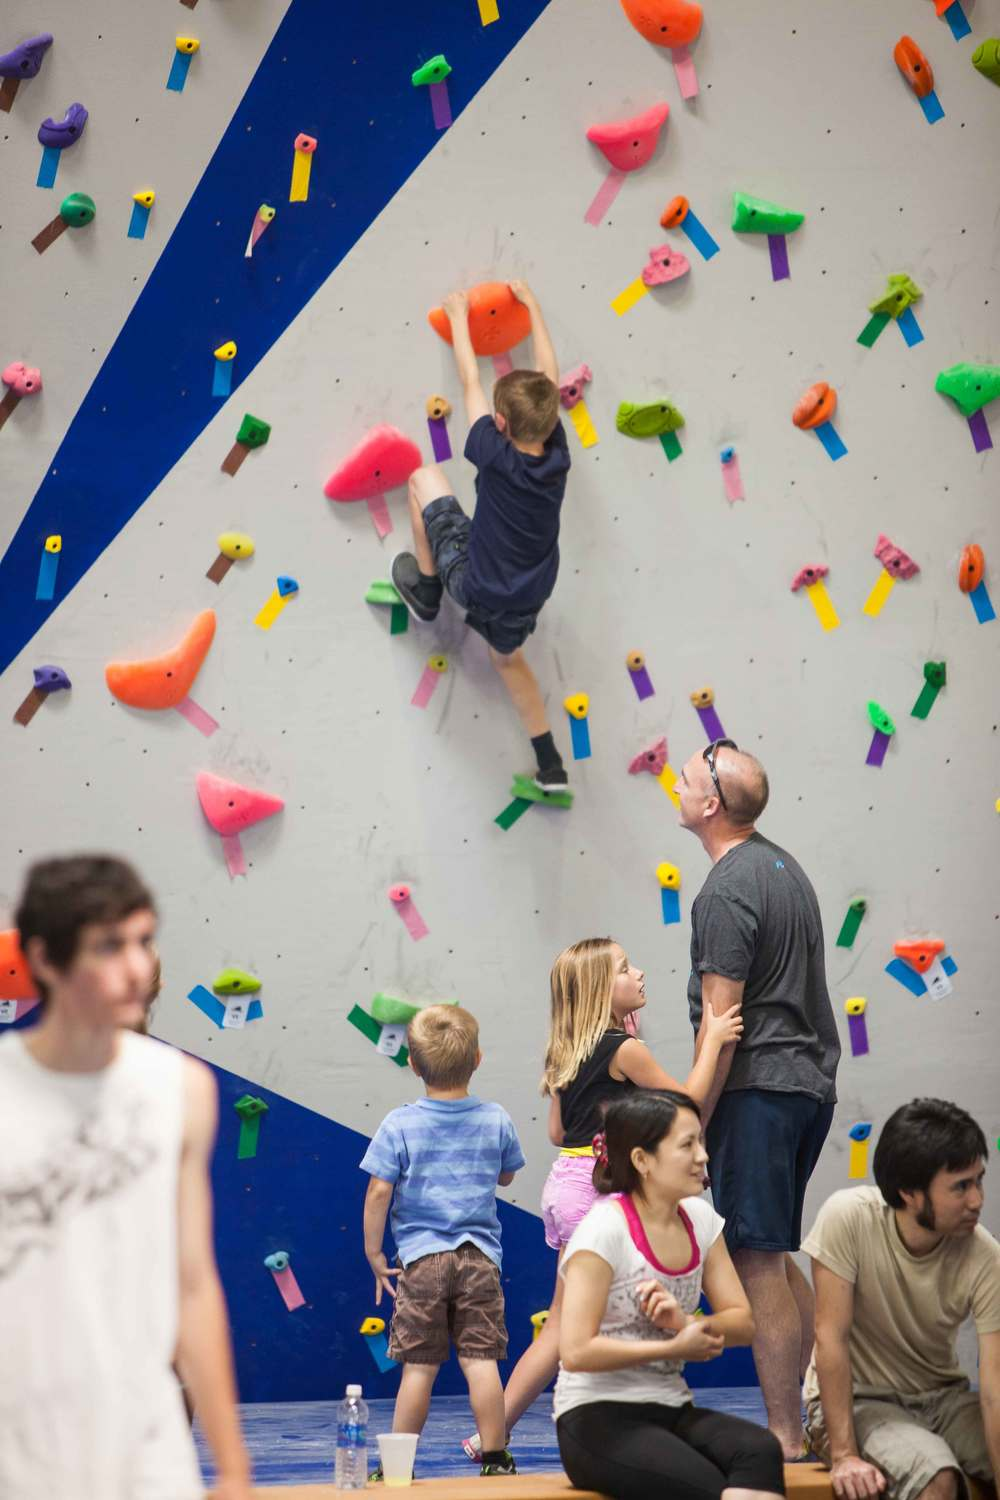 Kid on climbing wall